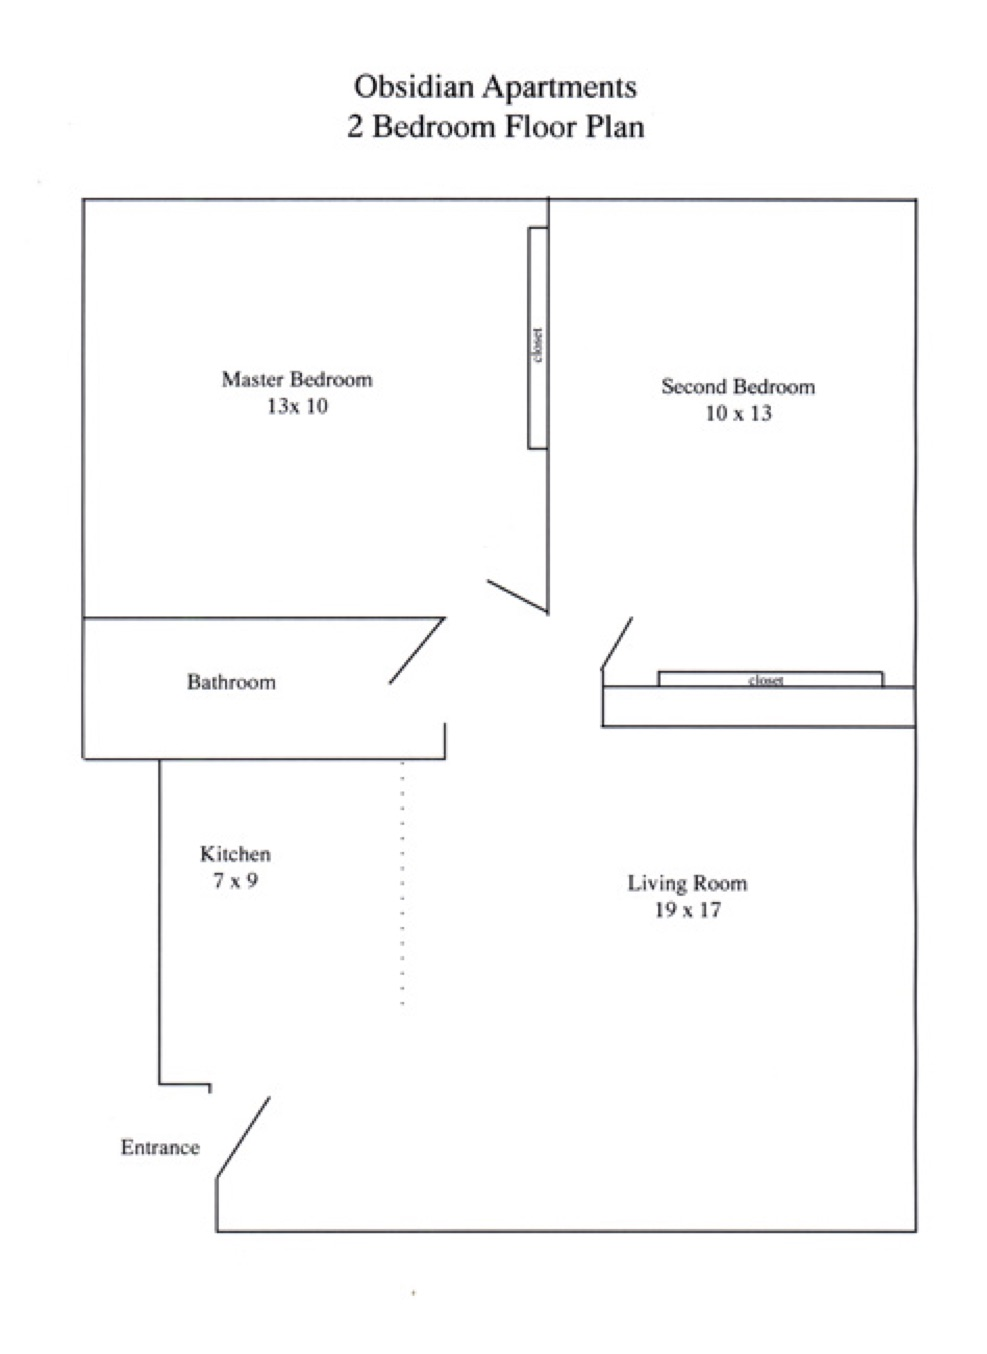 The Obsidian Floor Plan for 2 Bedrooms.